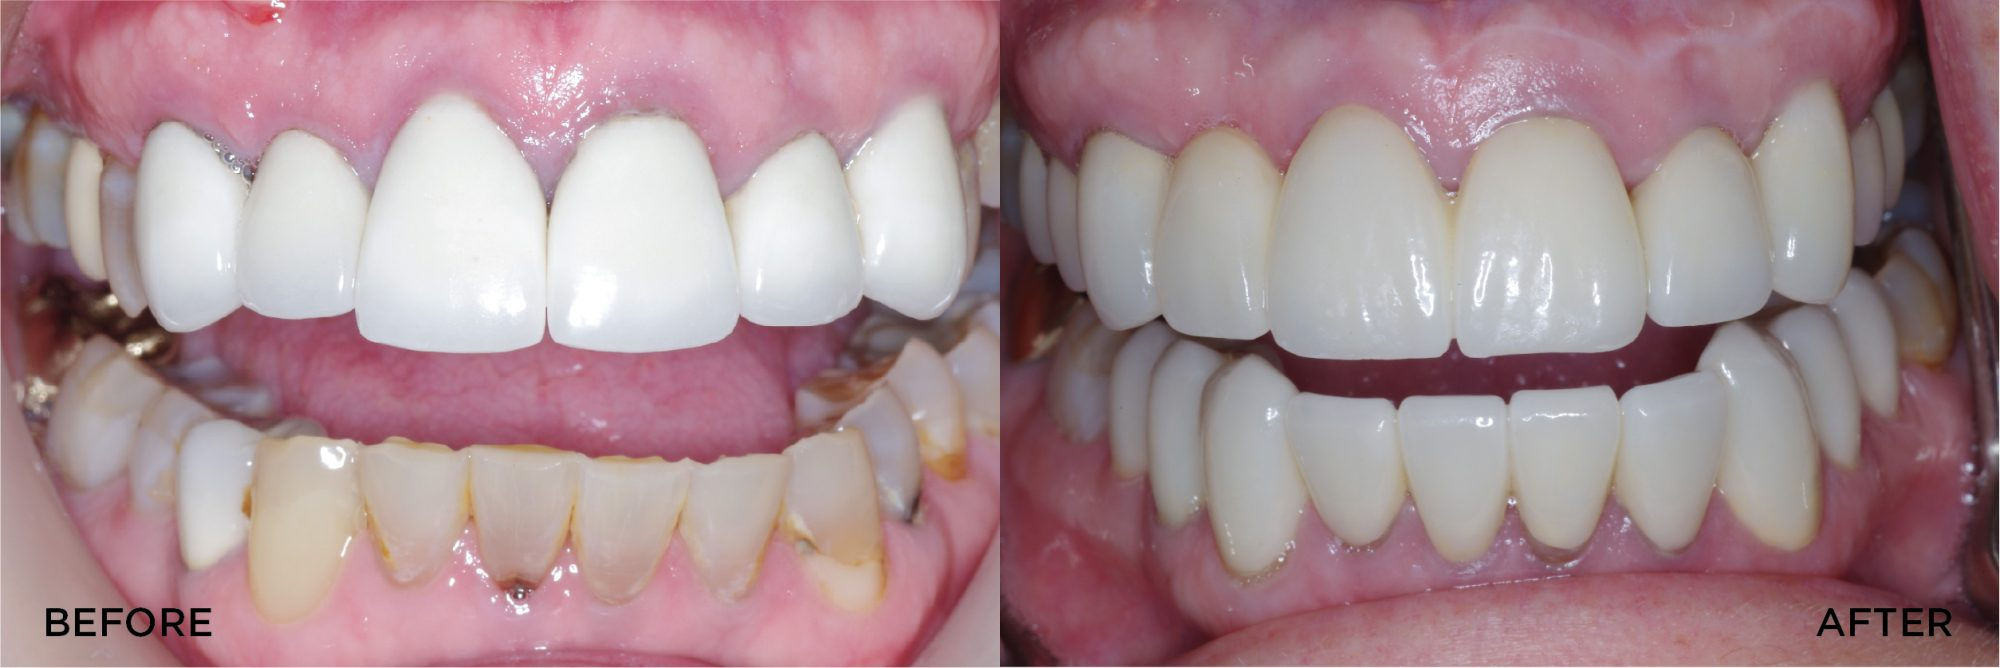 Full Mouth Rehab with Crowns Veneers